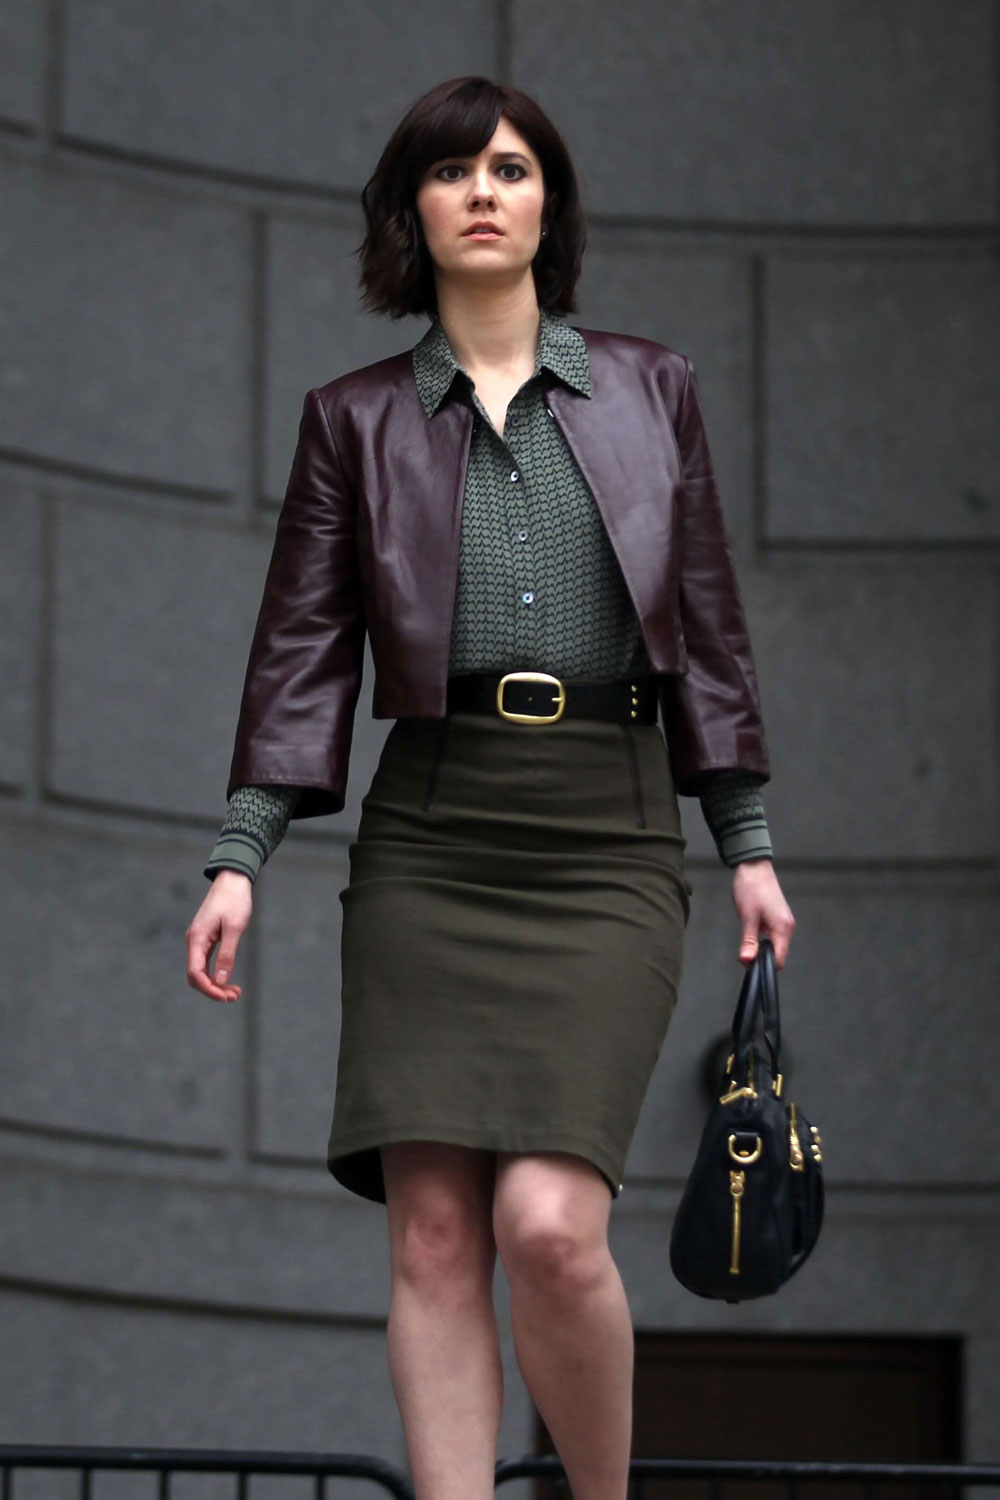 New Smart Girl Wallpaper Mary Elizabeth Winstead On The Set Of Braindead Leather